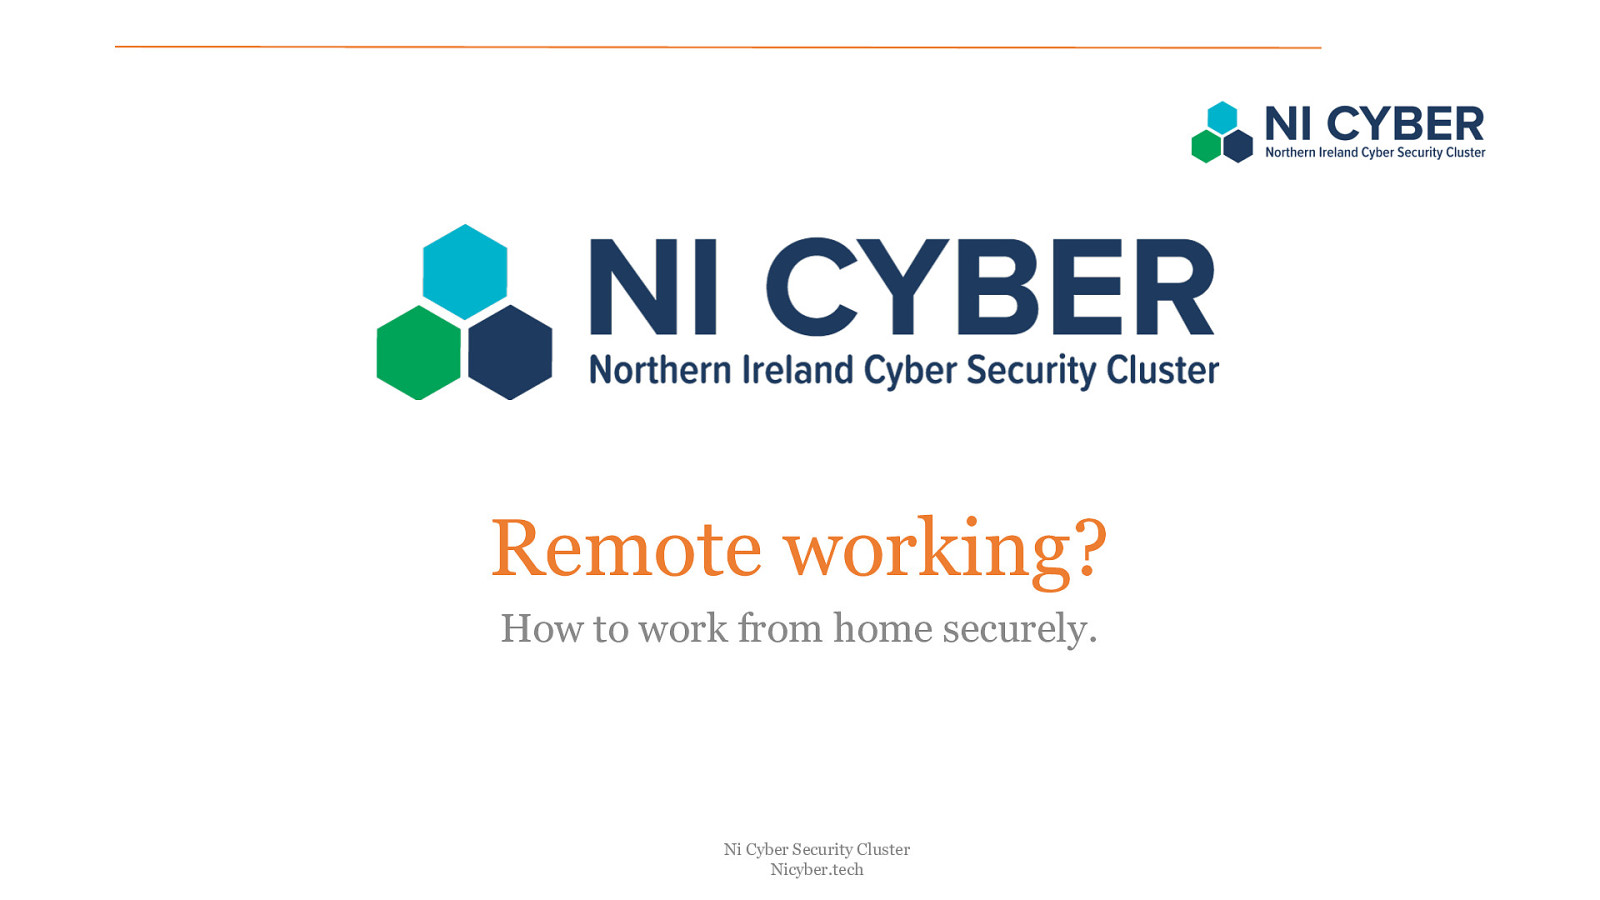 Remote working: how to work securely from home